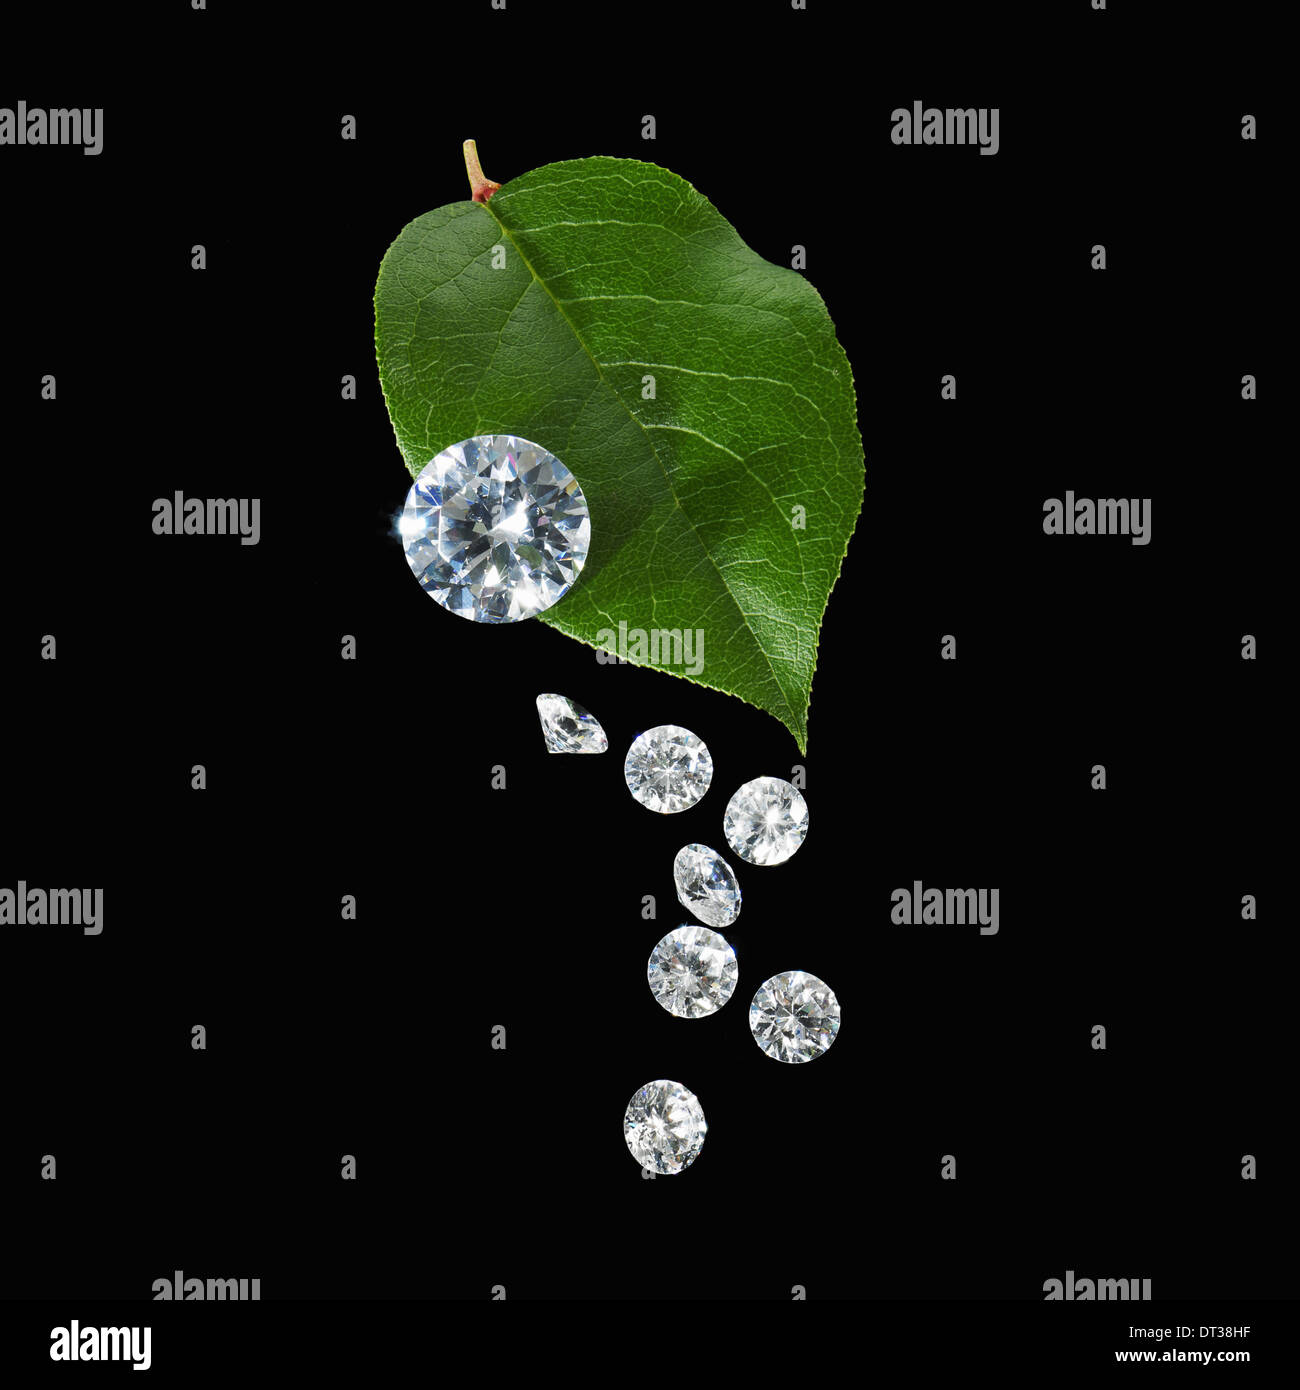 A green leaf with vein markings. A group of small clear glass beads, gem cut with reflective surfaces. Stock Photo